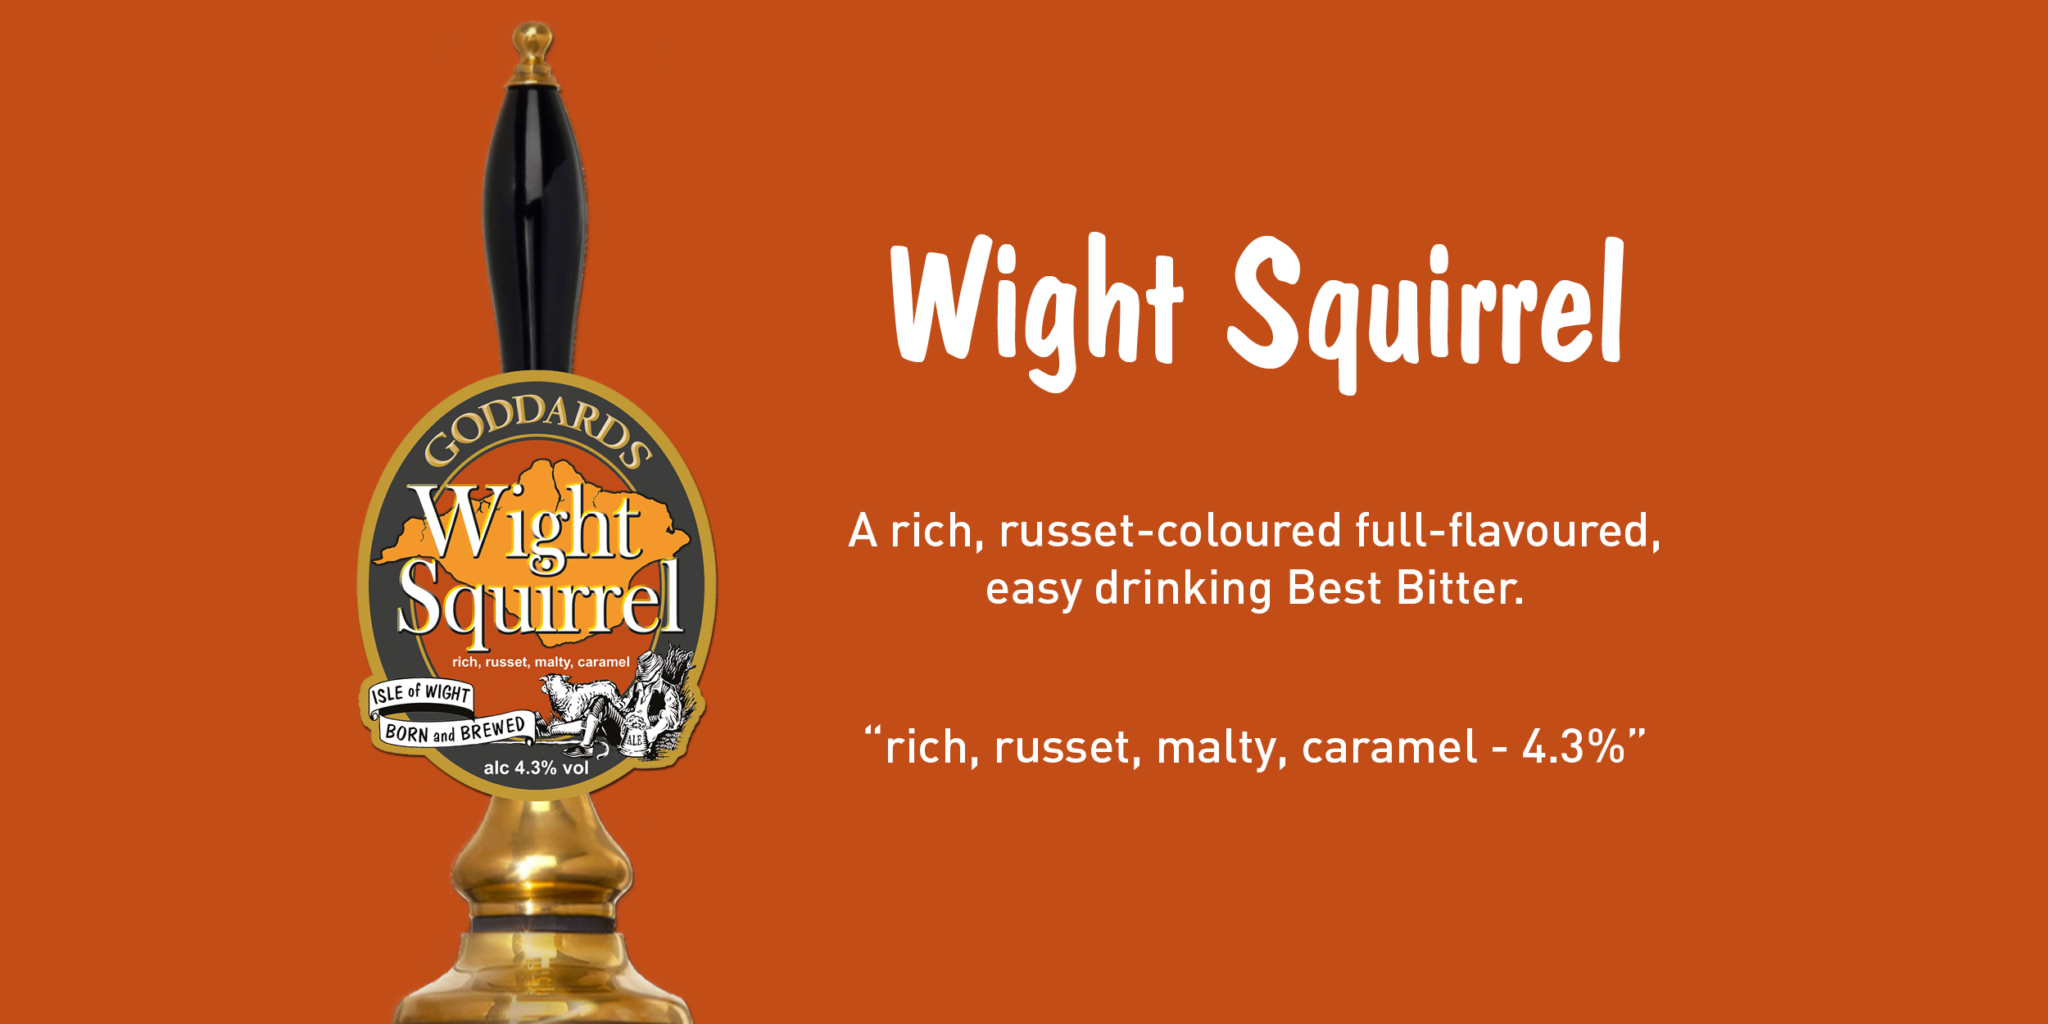 Goddards Brewery Wight Squirrel 1200 x 600